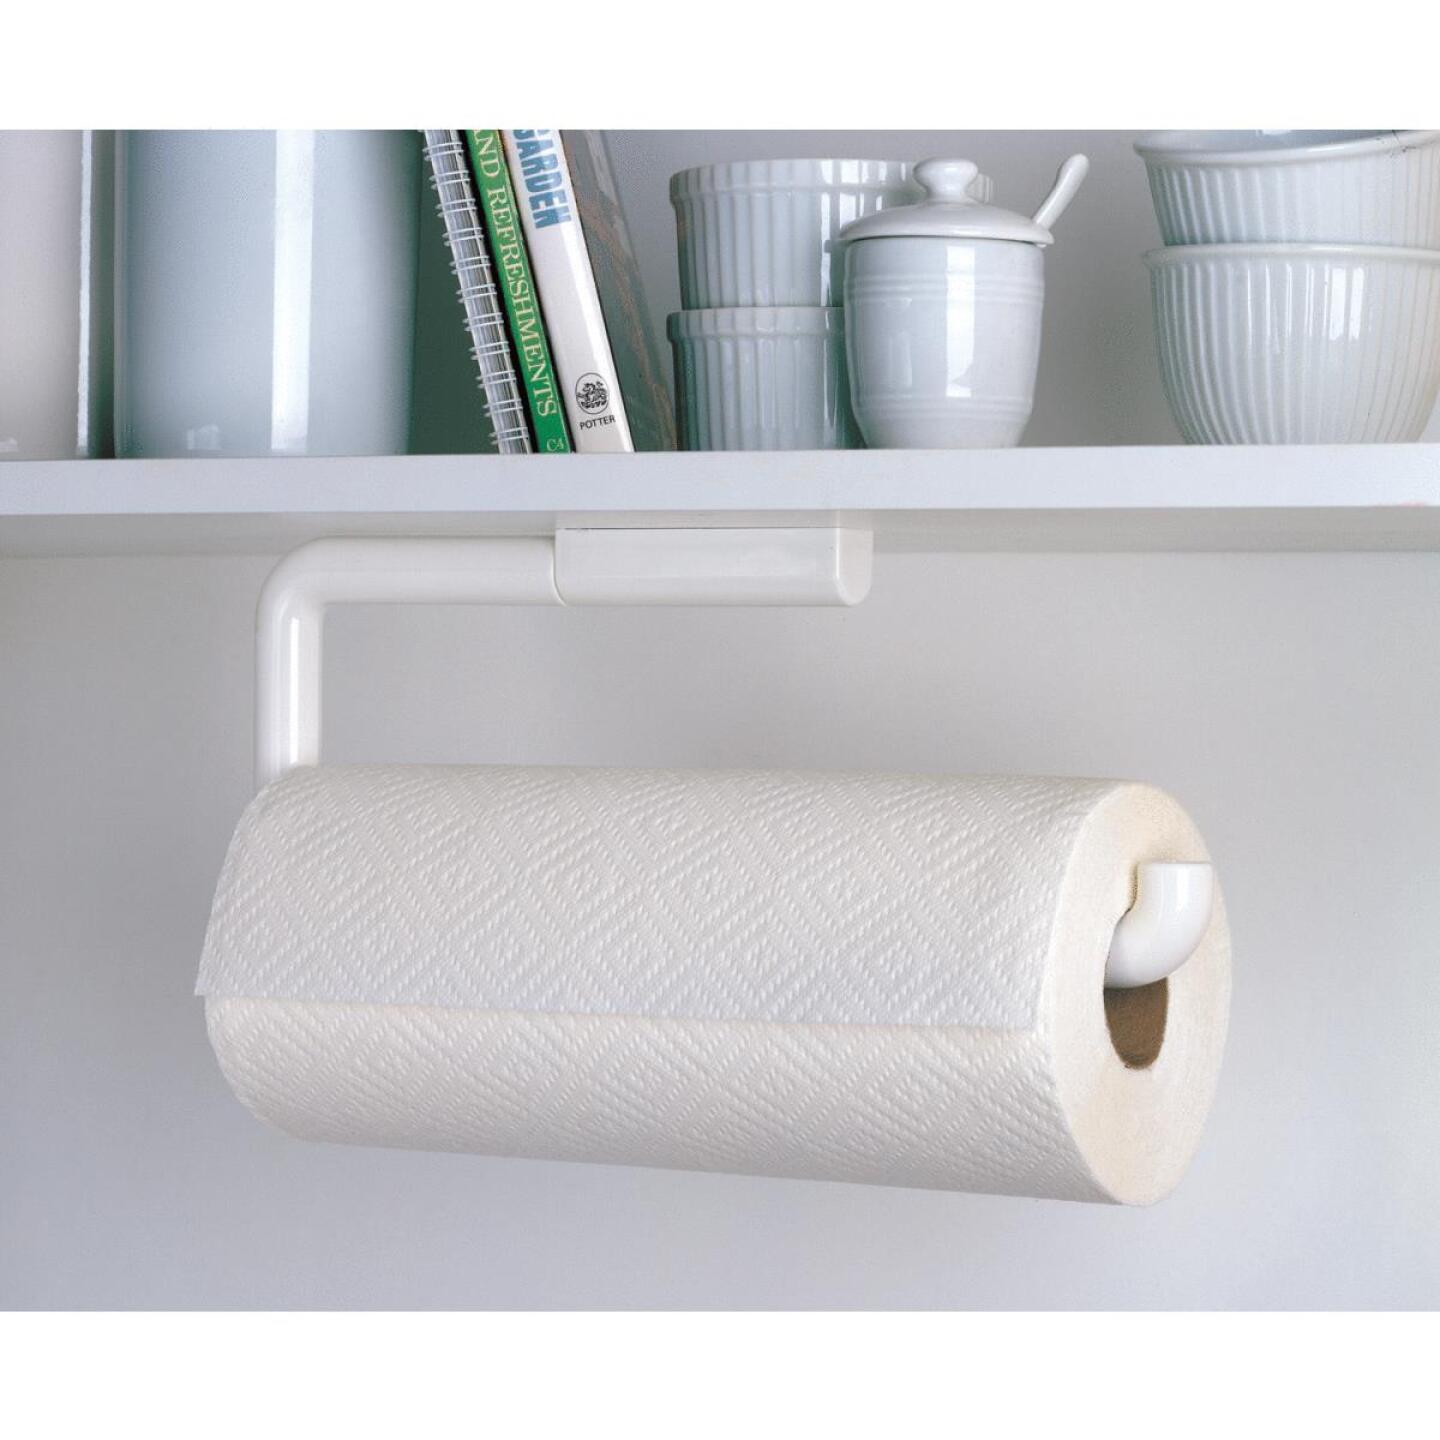 InterDesign Wall Mount Paper Towel Holder Image 1